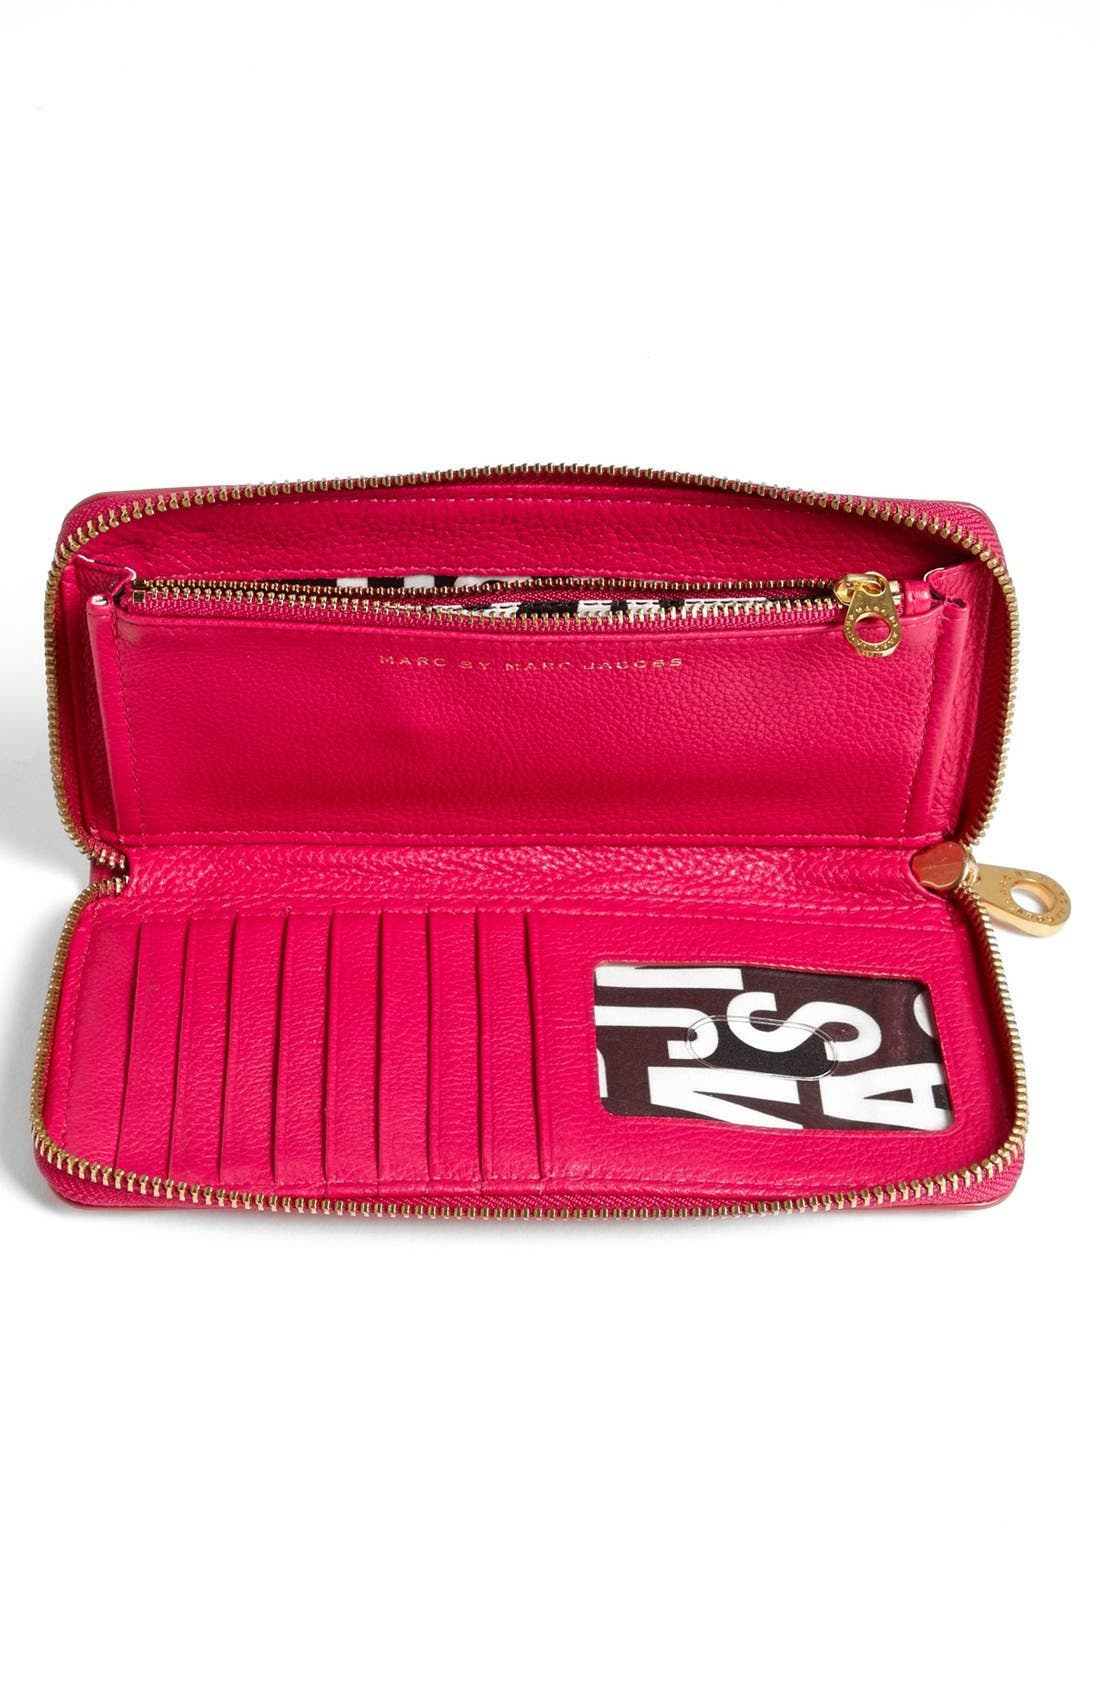 Alternate Image 3  - MARC BY MARC JACOBS 'Classic Q - Vertical Zippy' Wallet